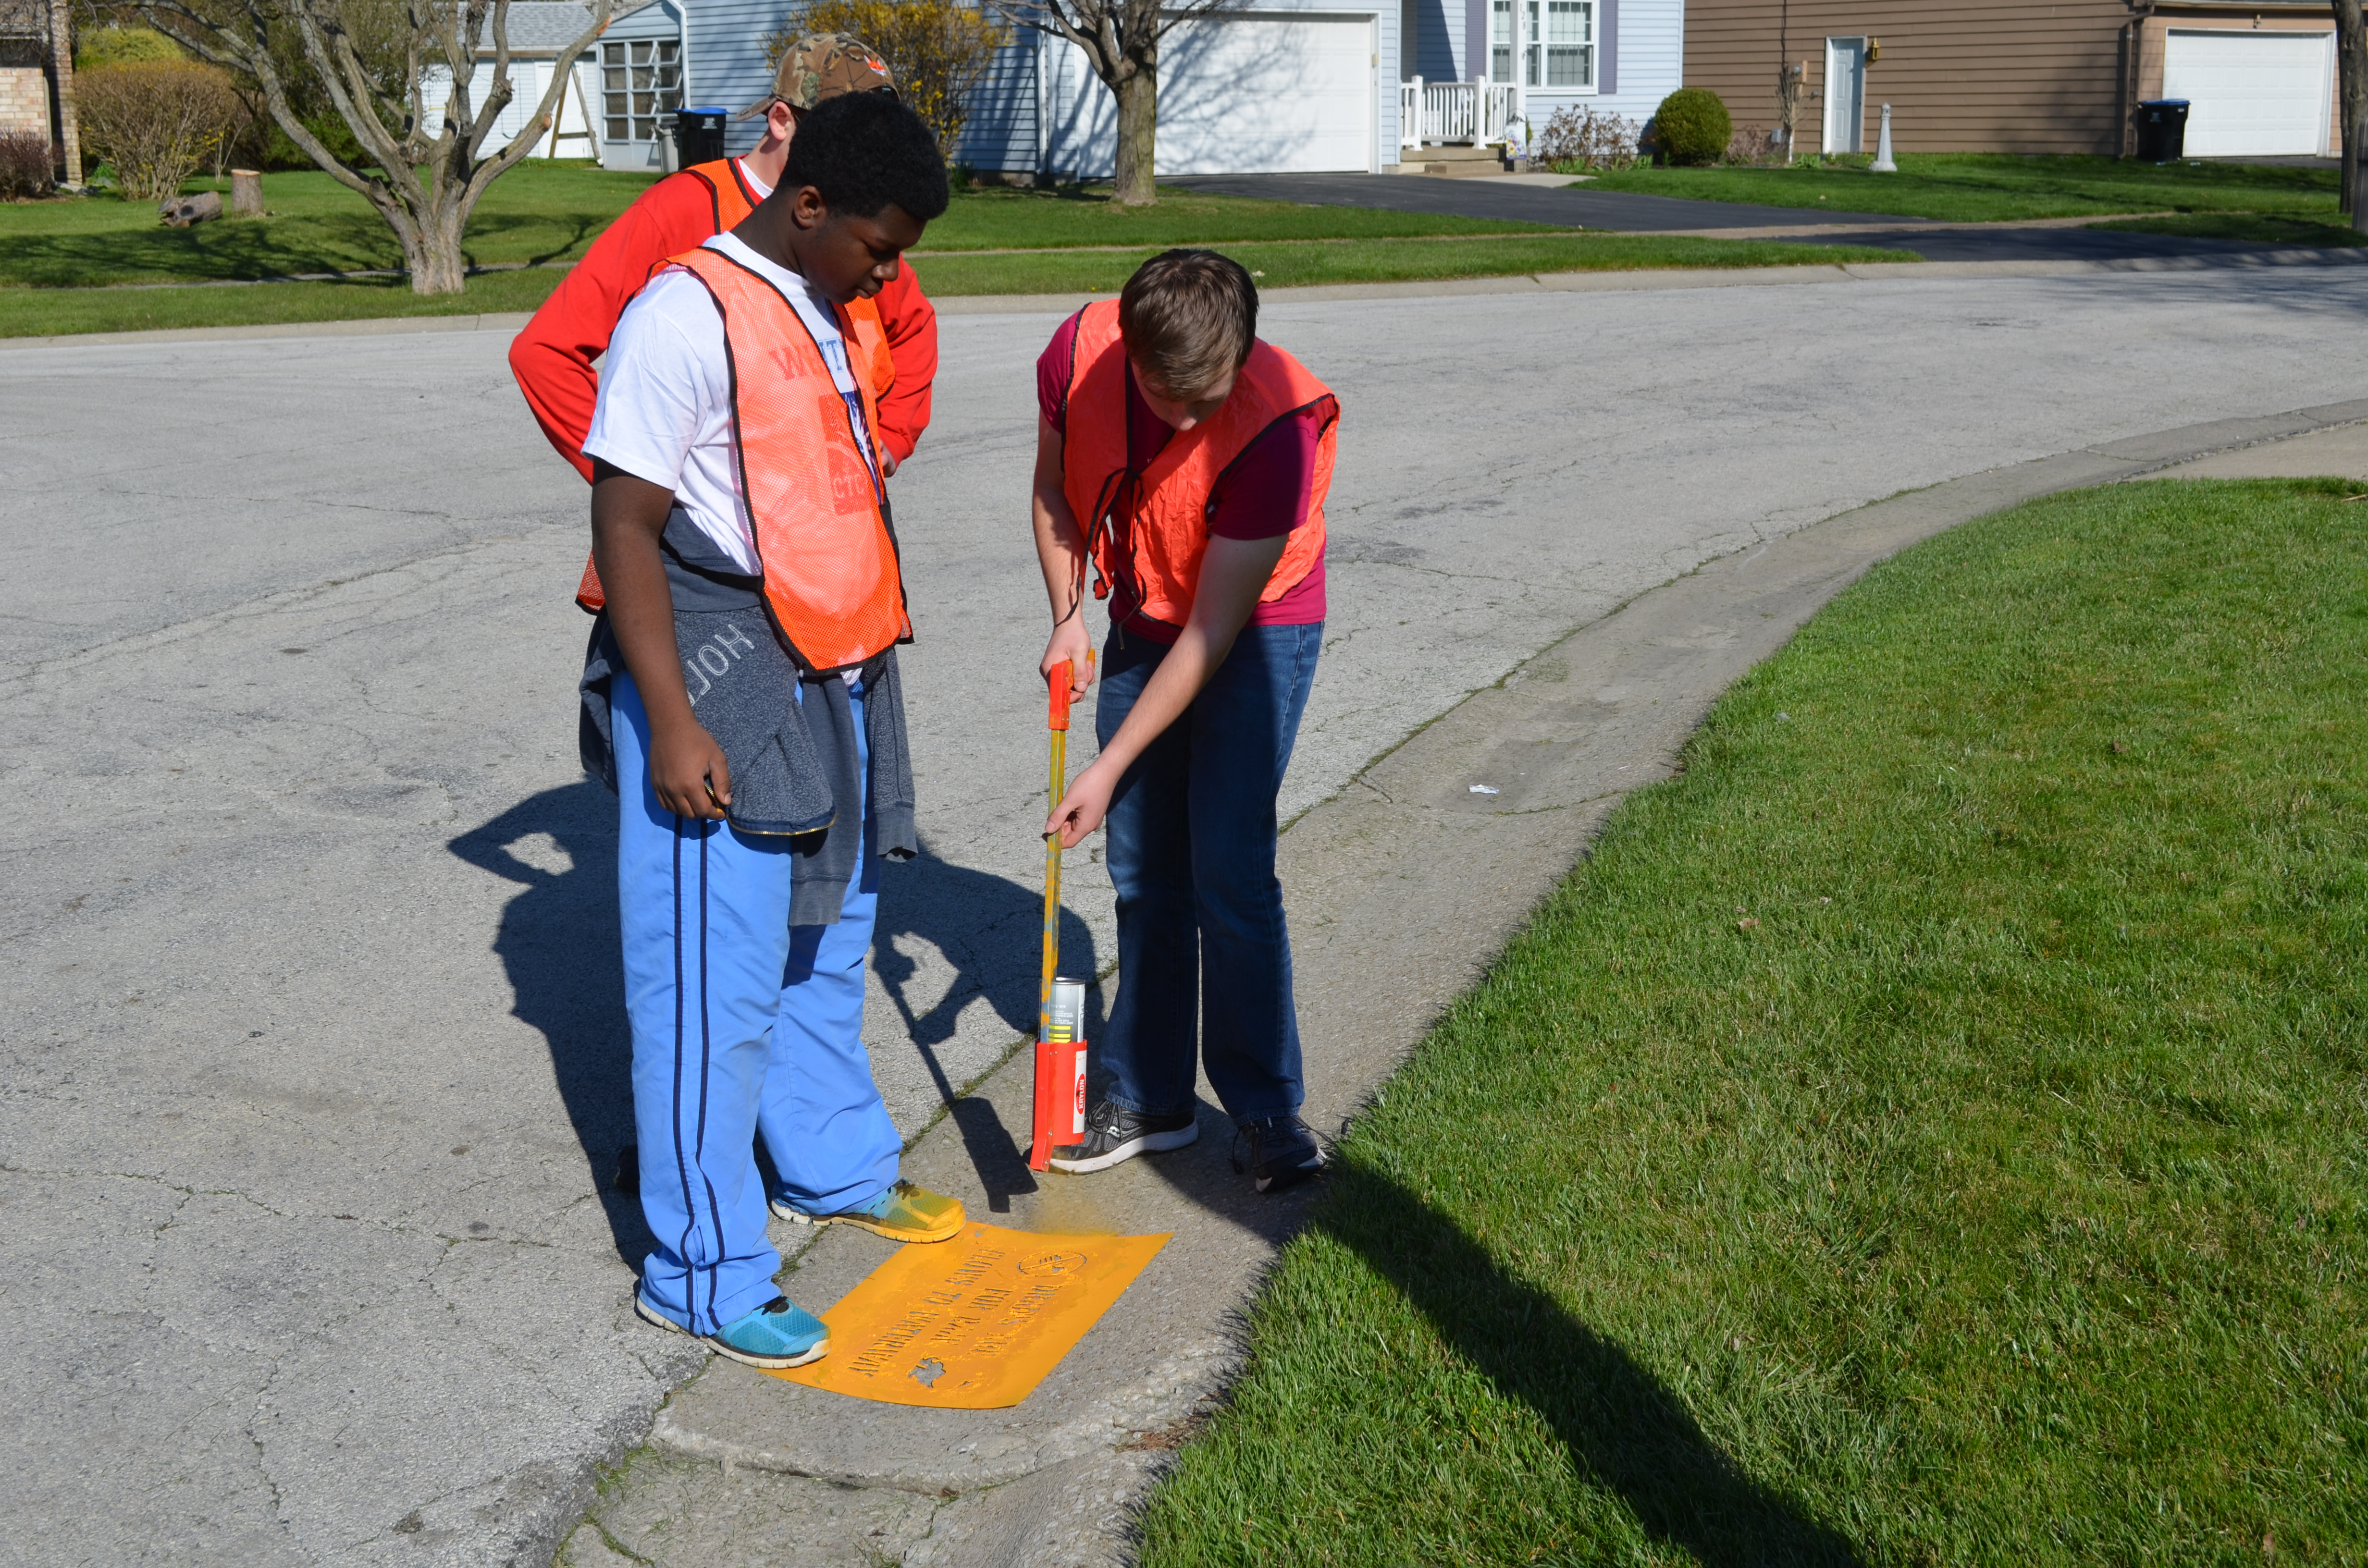 Great Opportunity to Work Together